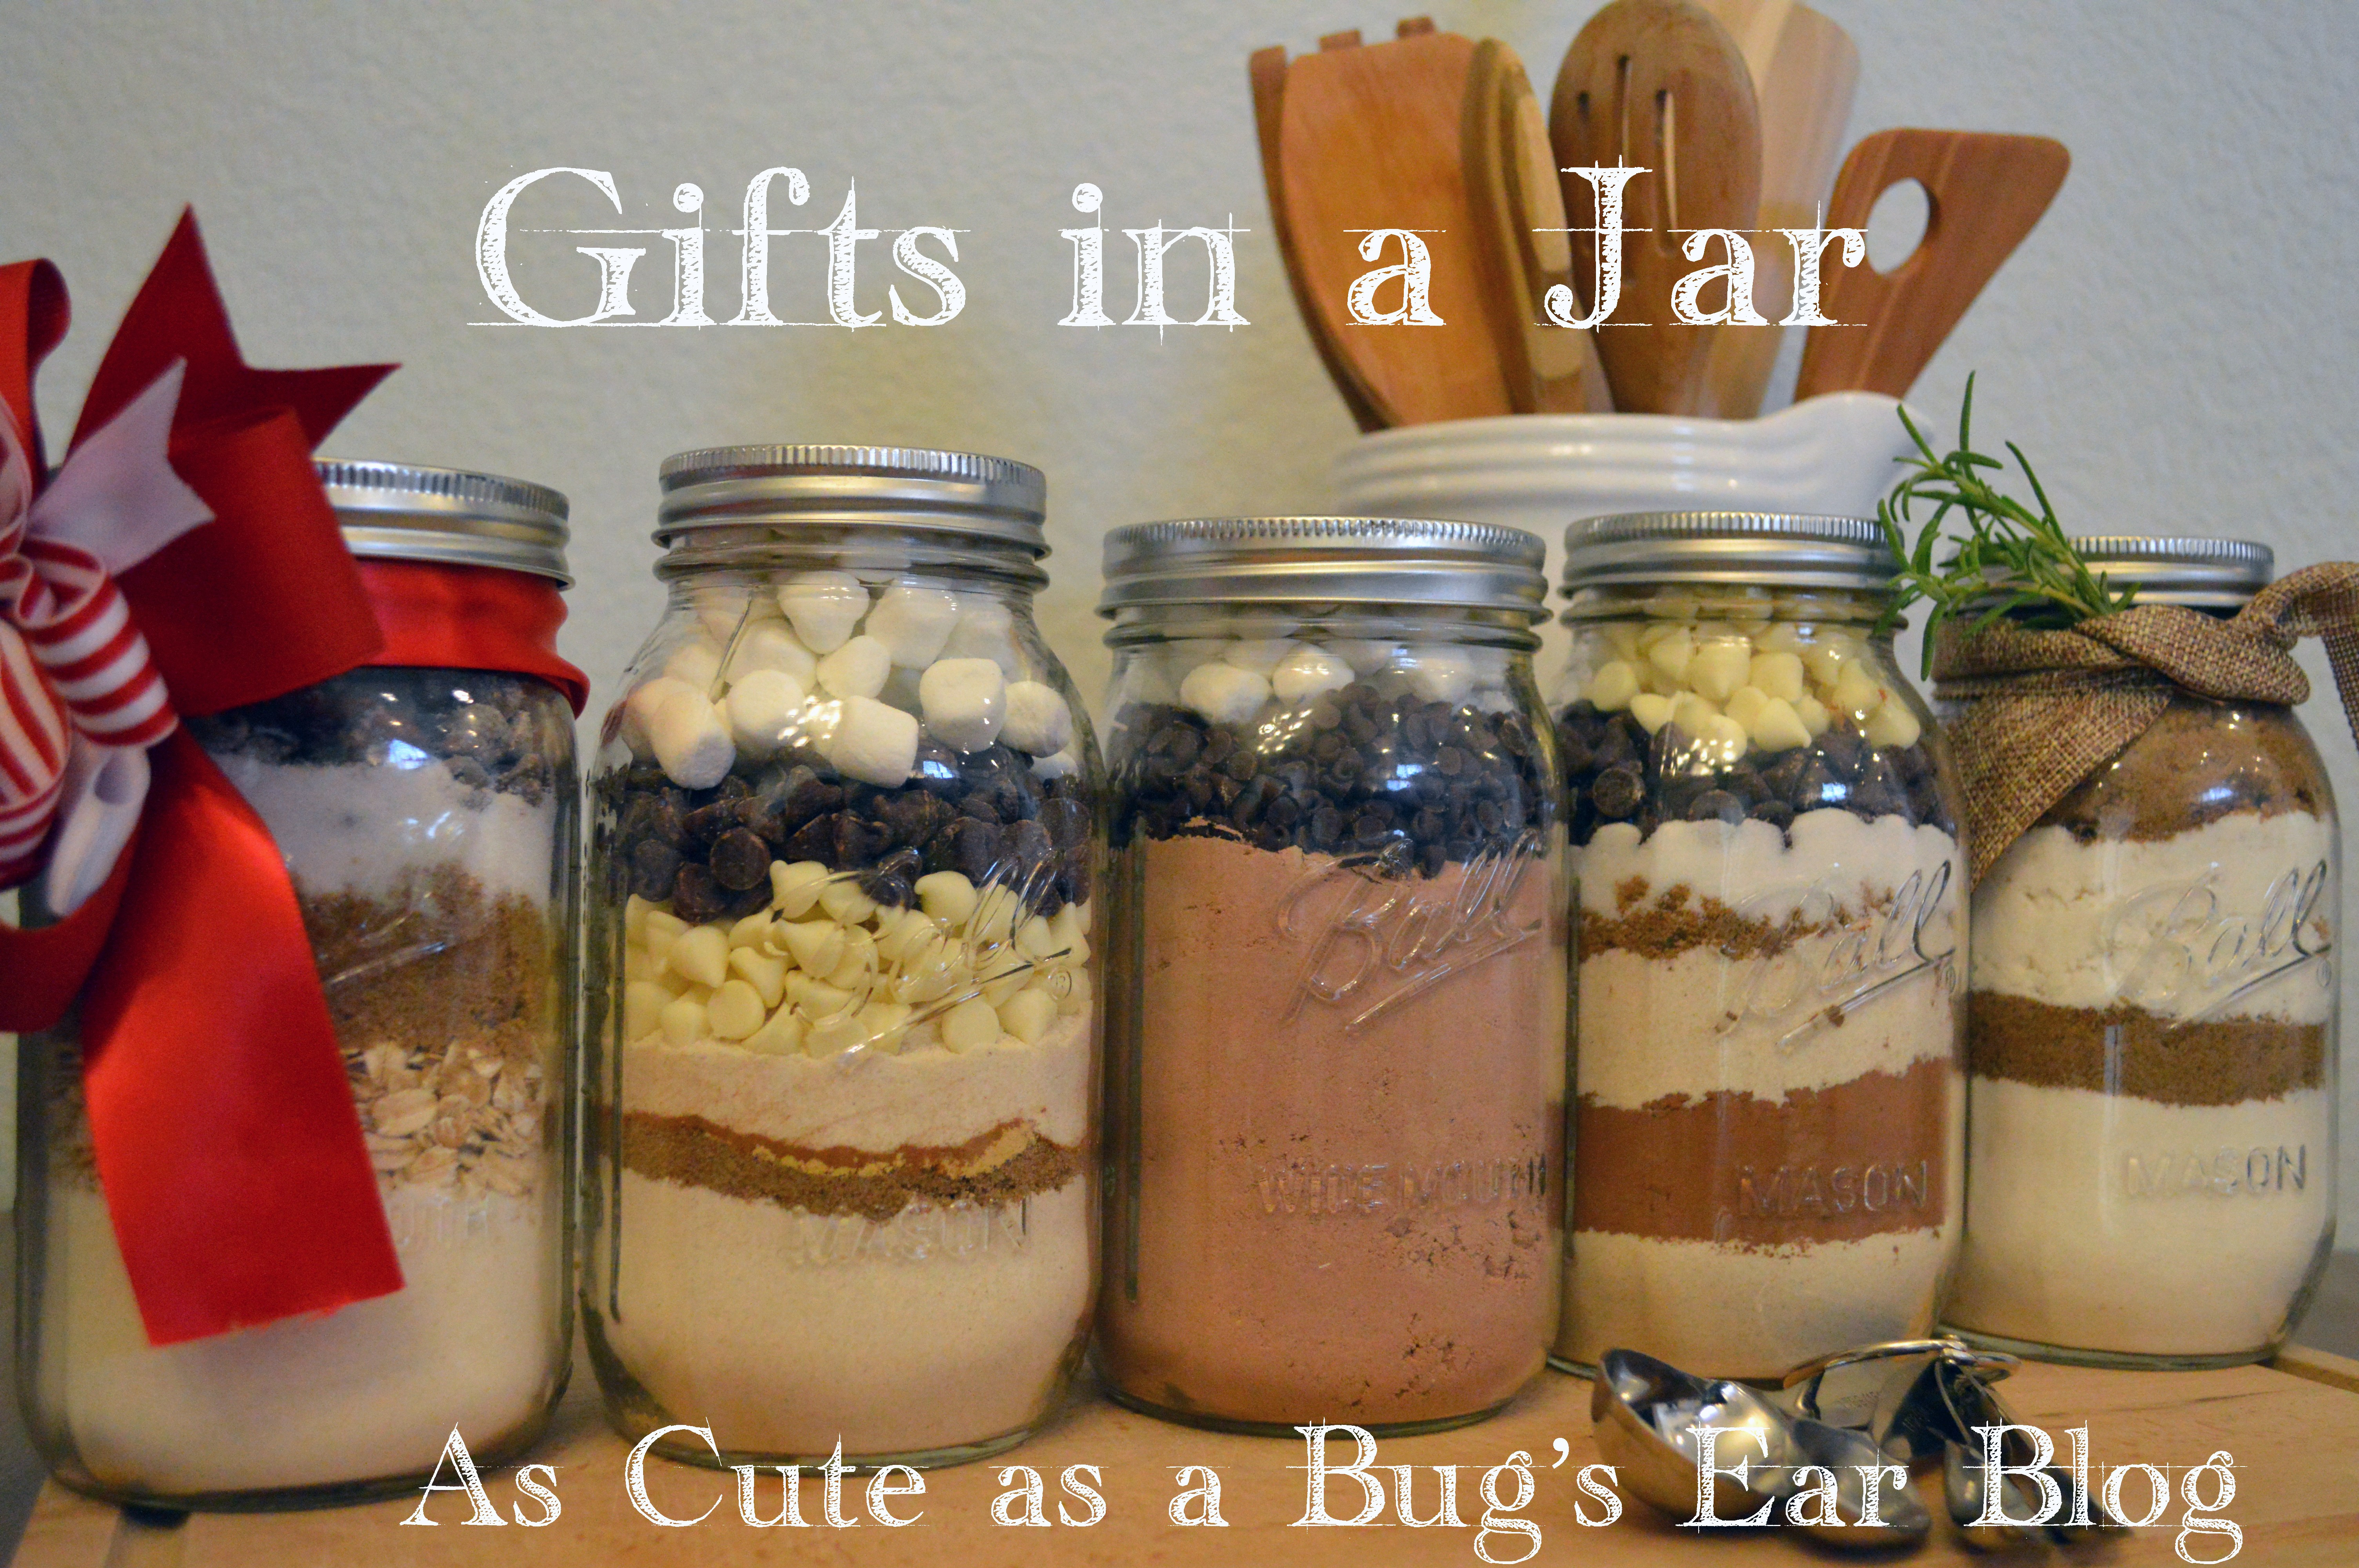 Baking Goods For Christmas Gifts  5 DIY Holiday Baked Goods in a Jar